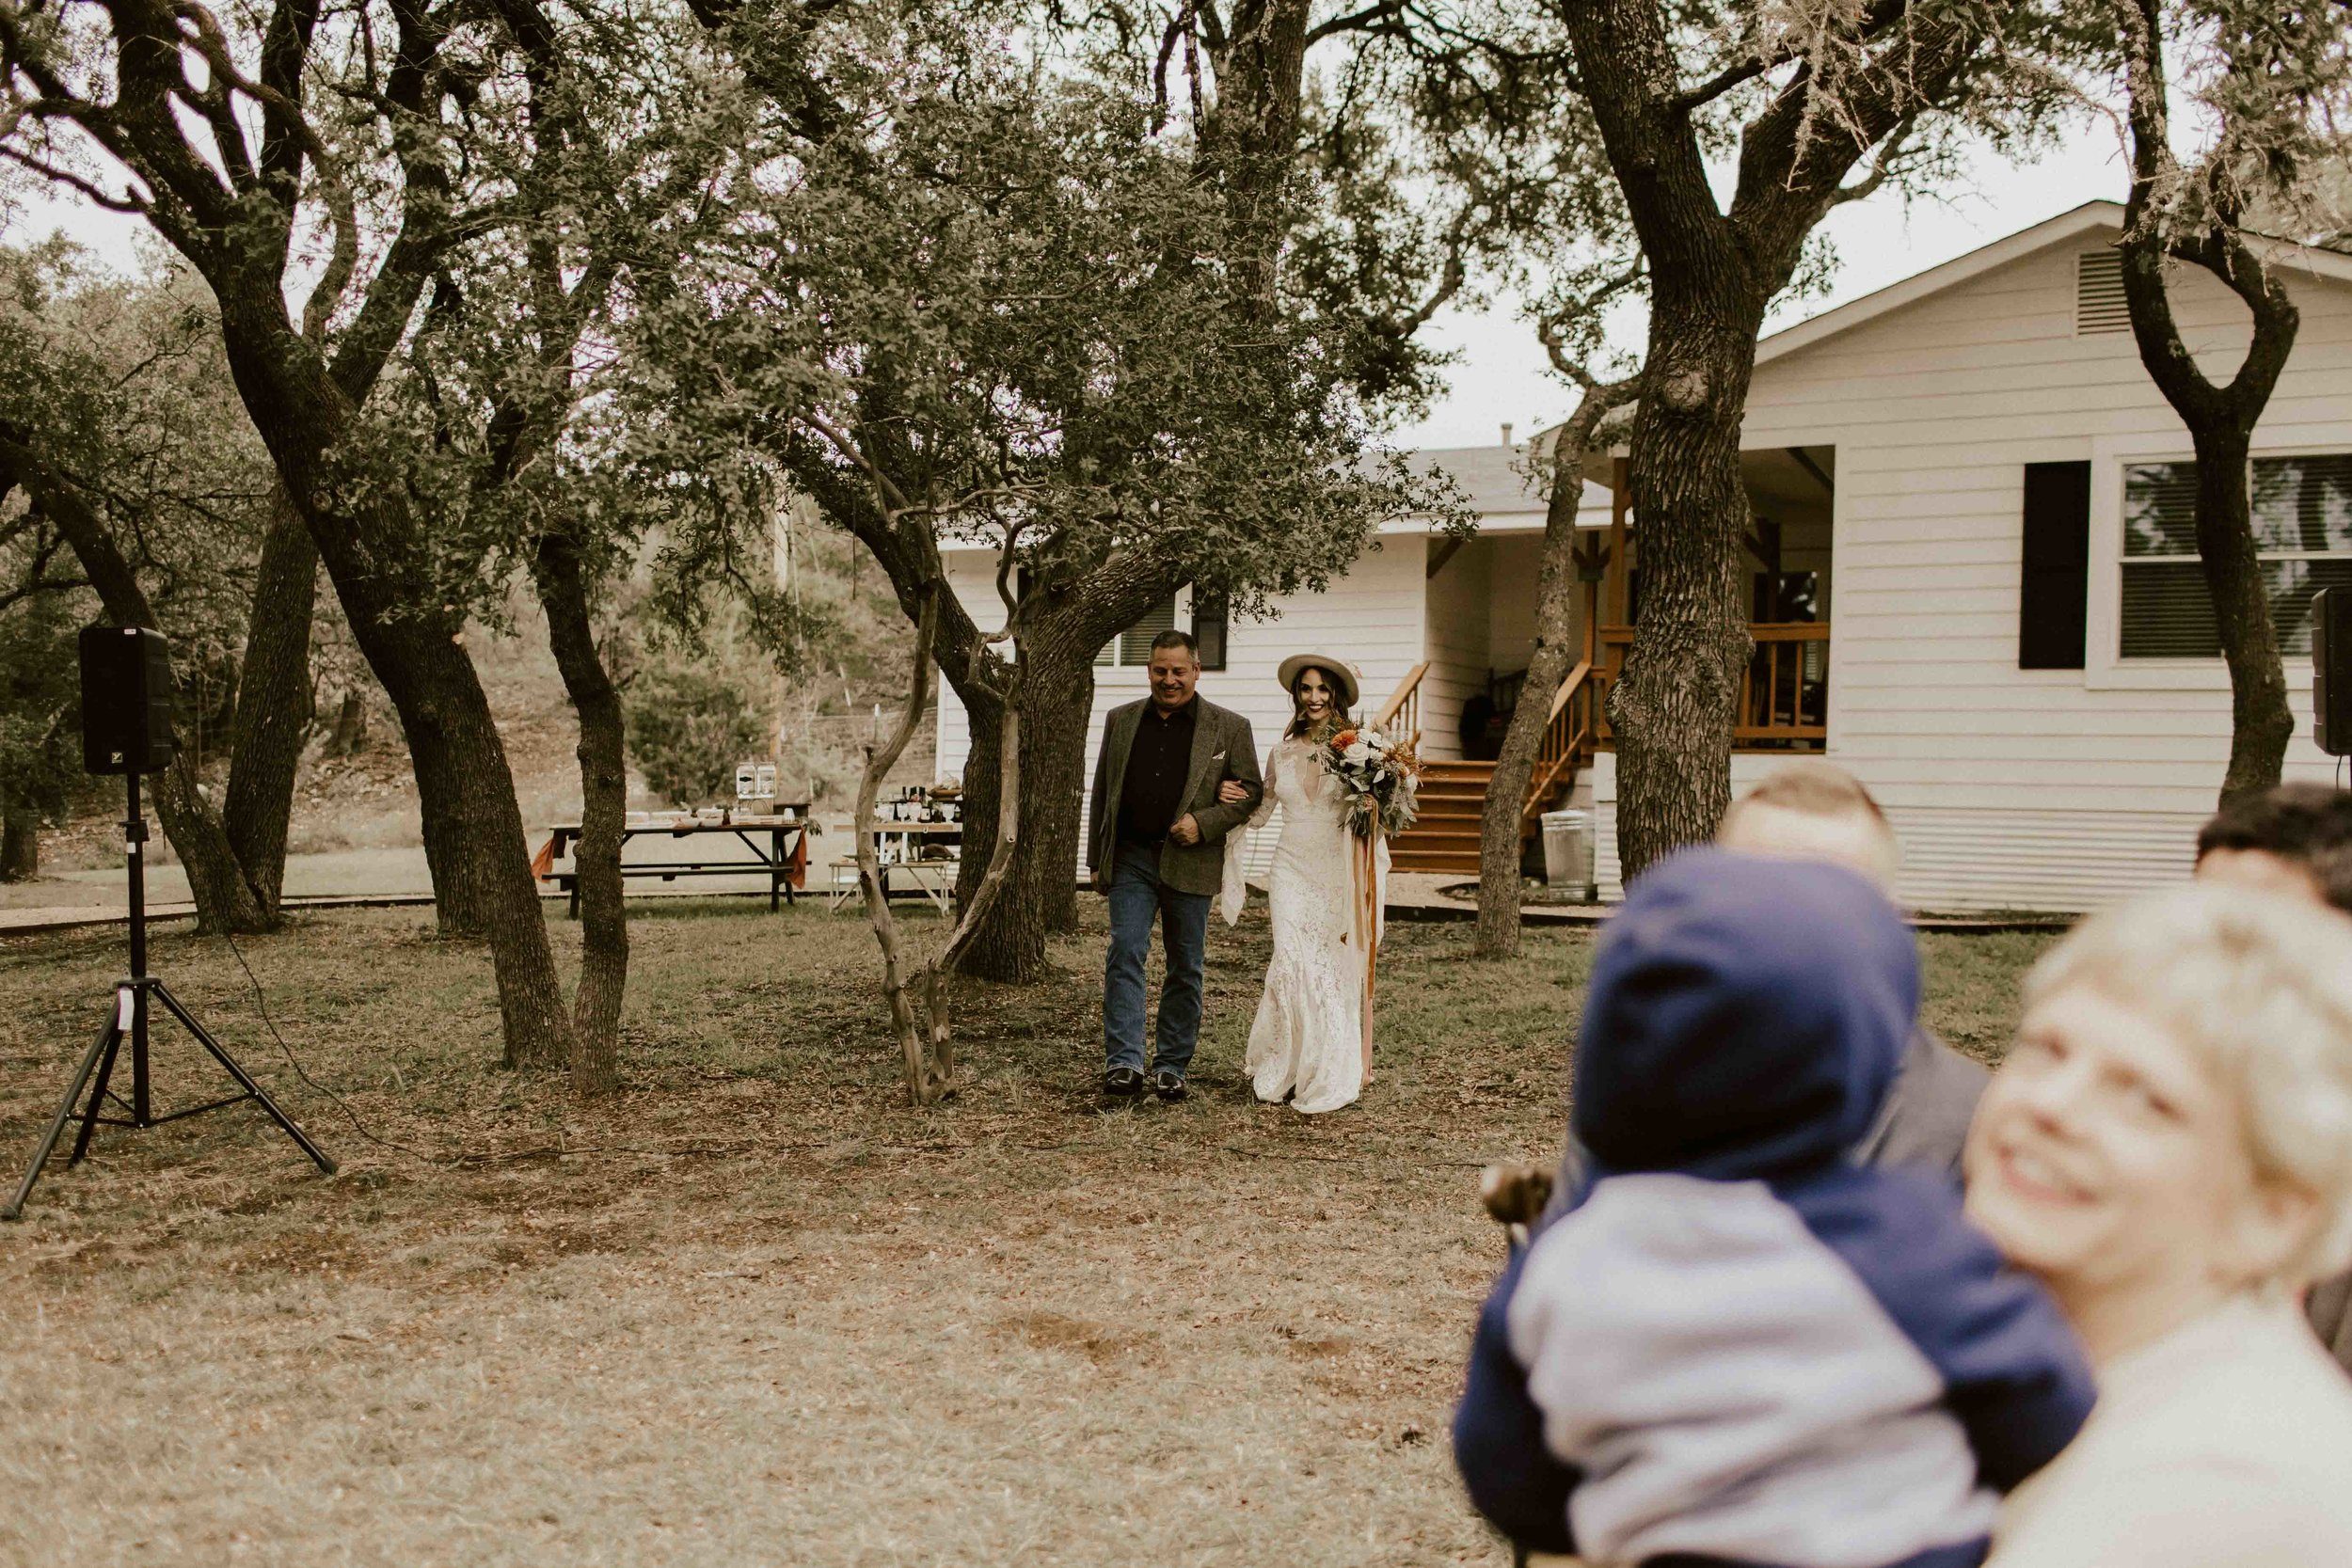 fall-intimate-vow-renewal-austin-texas-wedding-photographer-1262.jpg